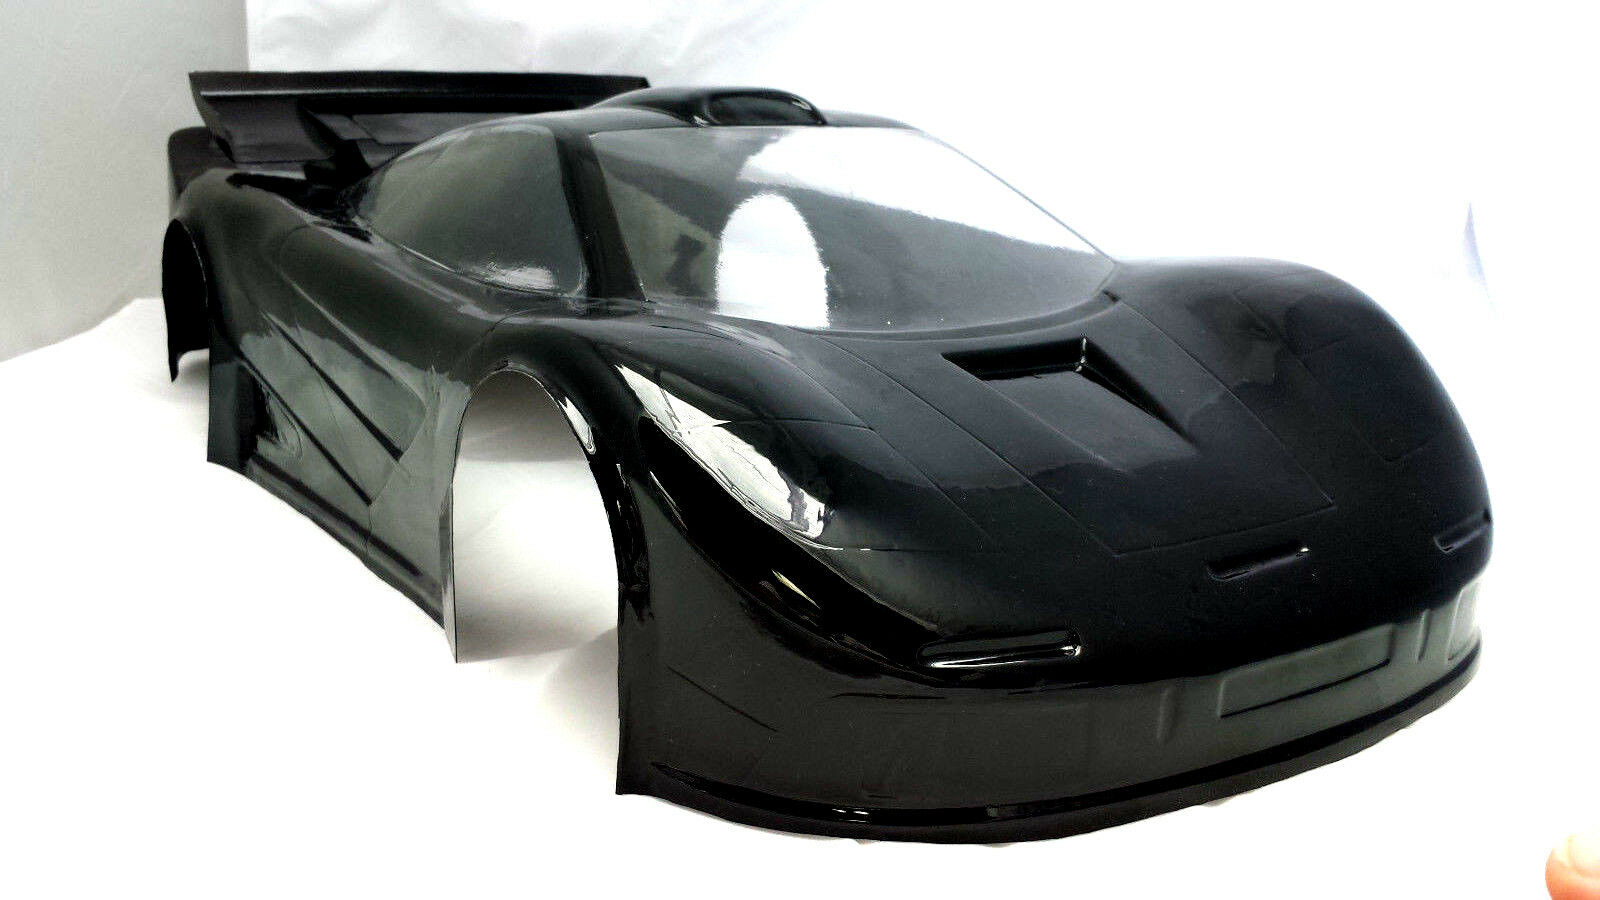 1/8 Mclaren GTR RC Car Body clear Shell 360 mm GT-V2 Long Wheelbase 7500/1.5